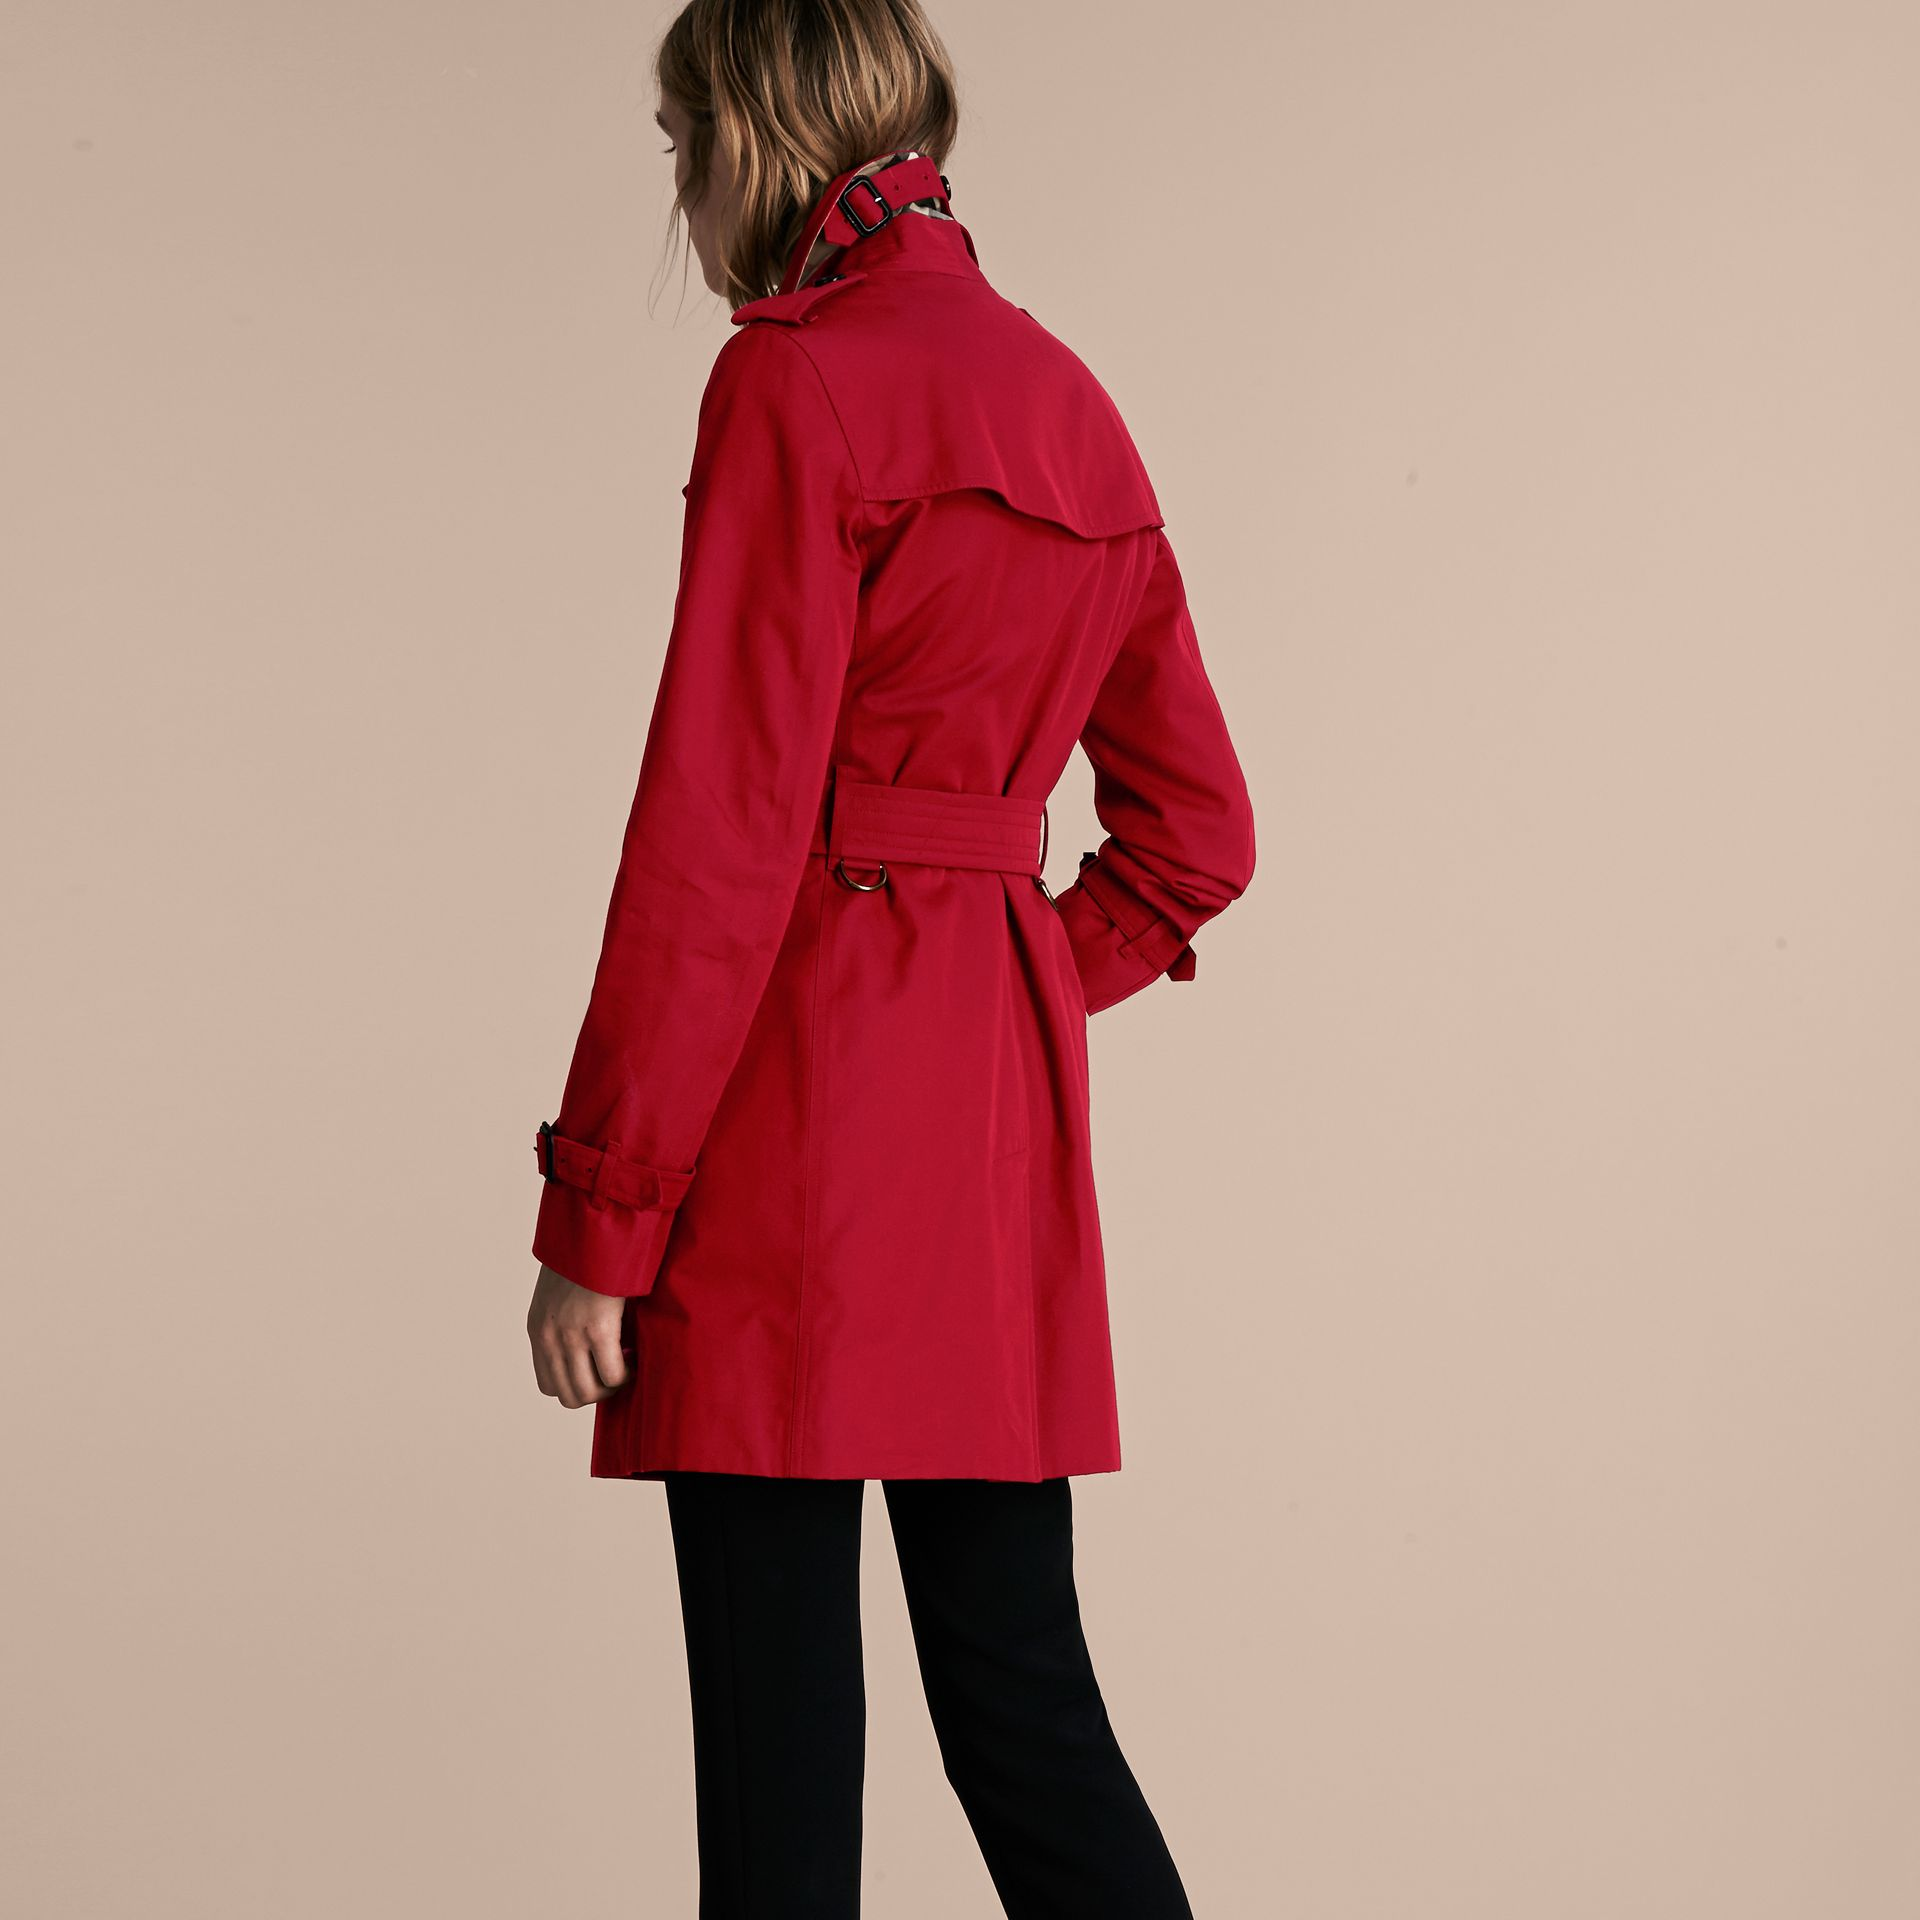 Parade red The Kensington – Mid-Length Heritage Trench Coat Parade Red - gallery image 3